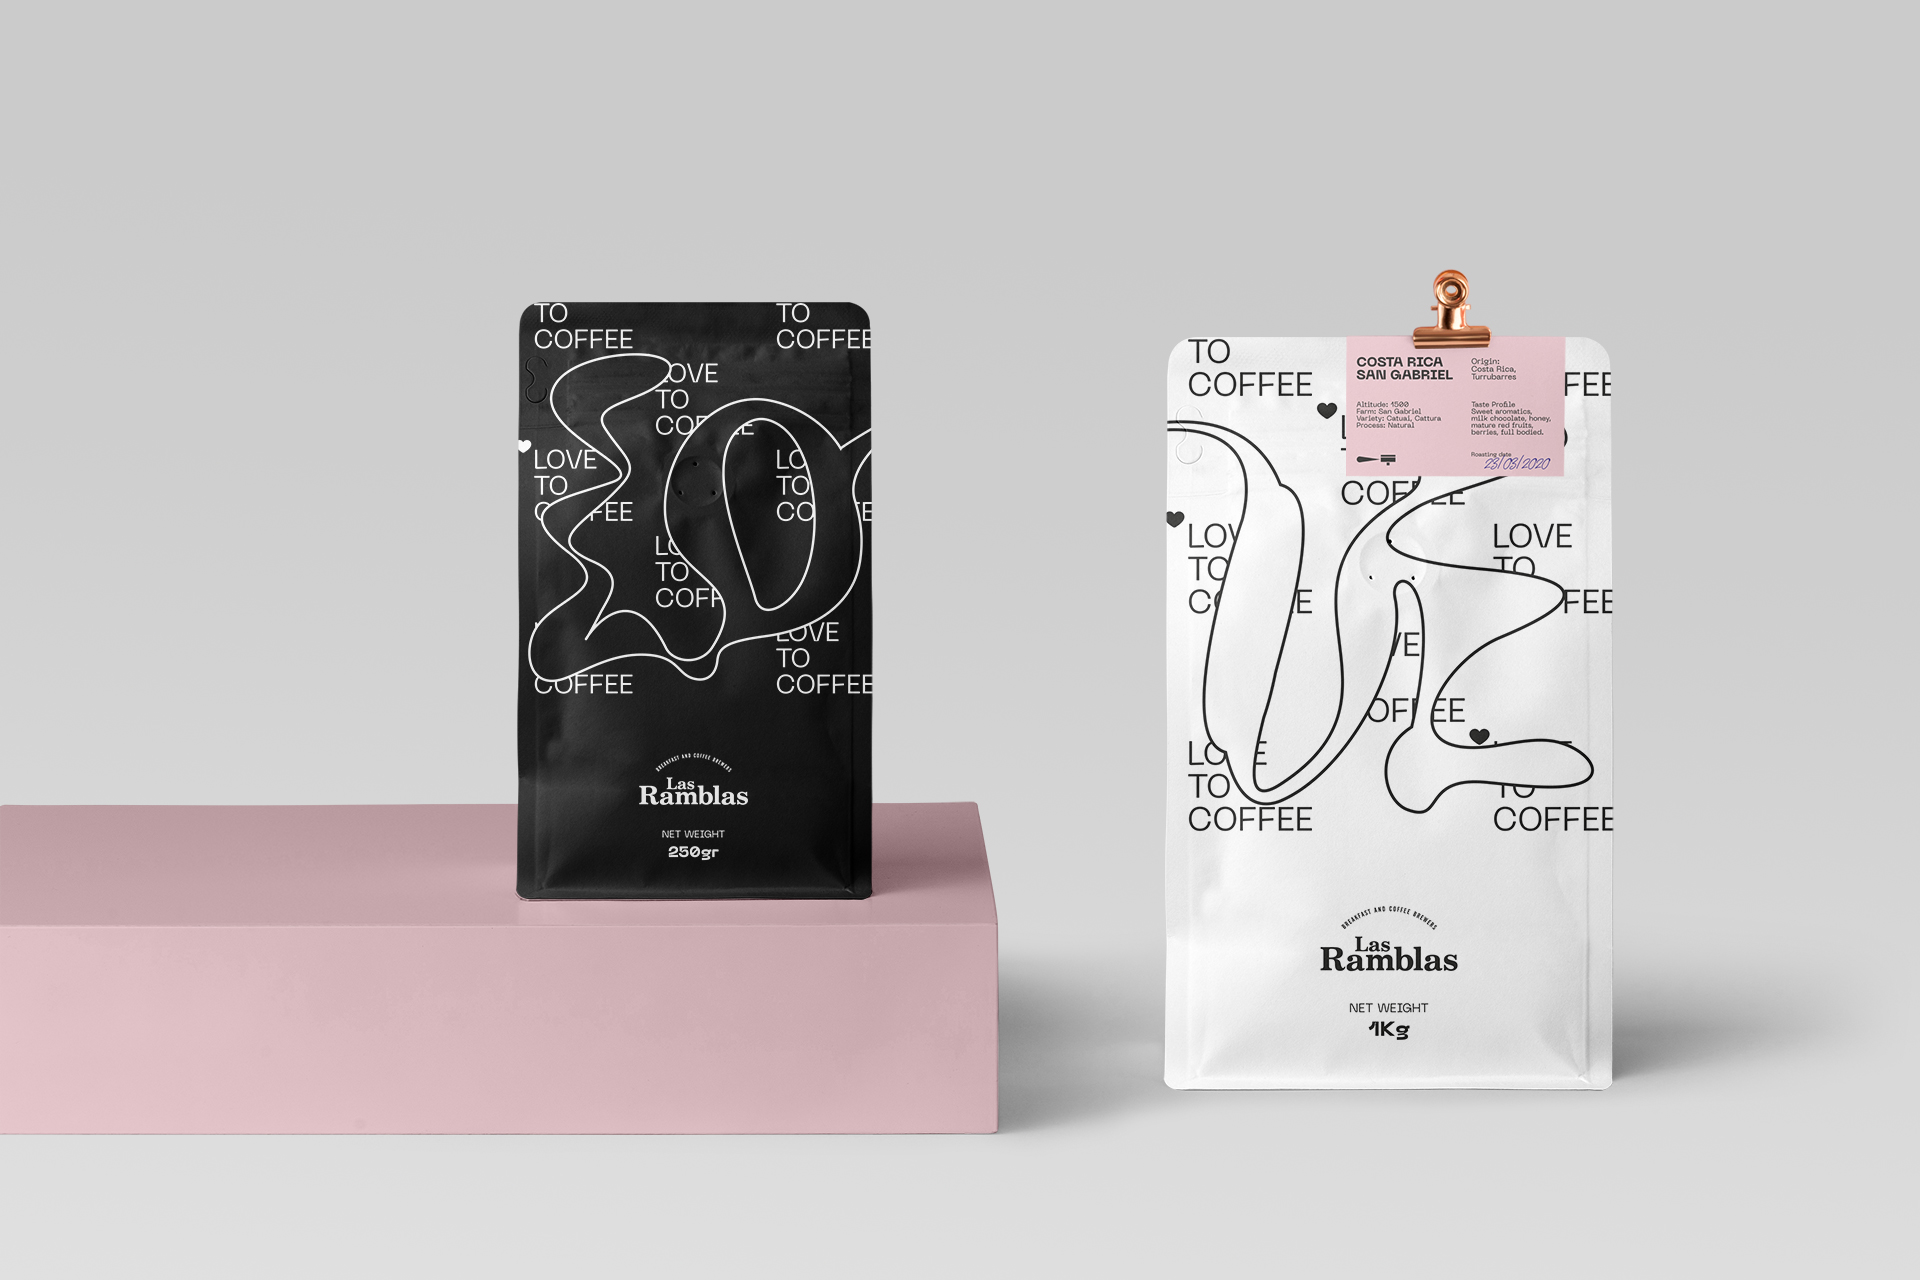 Coffee Bags Packaging Design for Las Ramblas Breakfast and Coffee Brewers